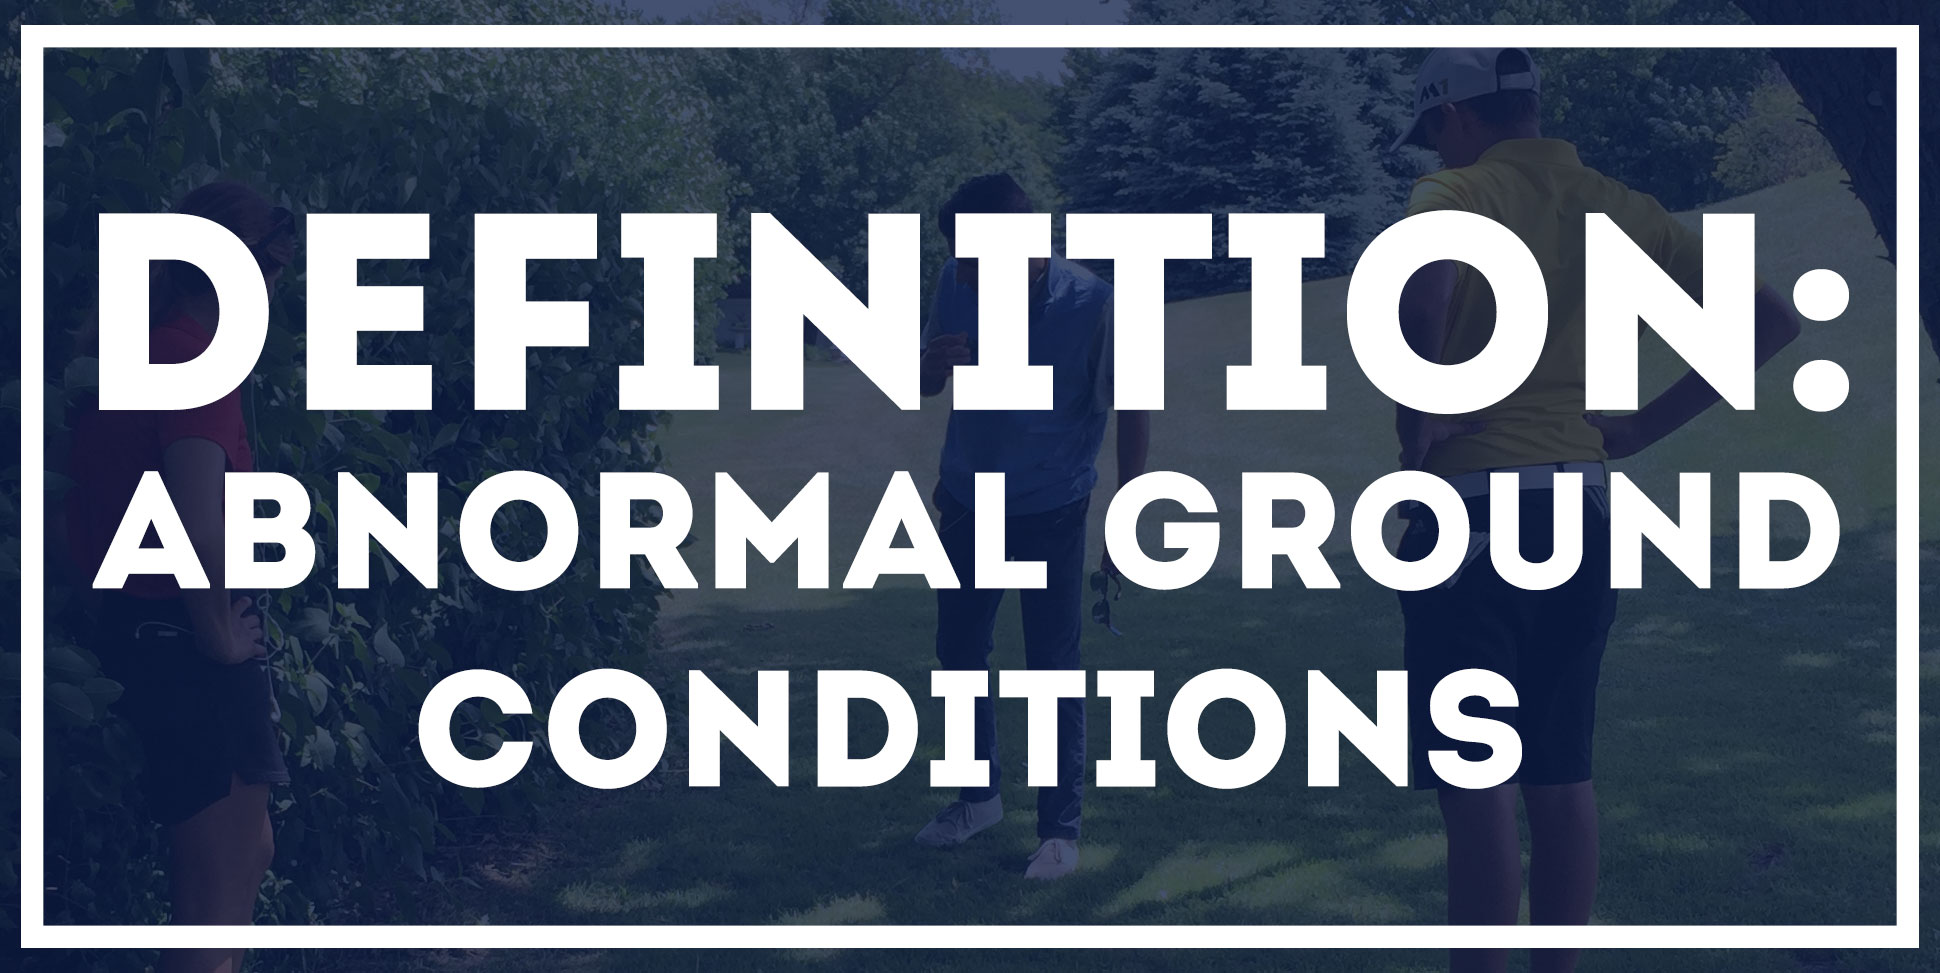 define-abnormal-ground-conditions-b.jpg